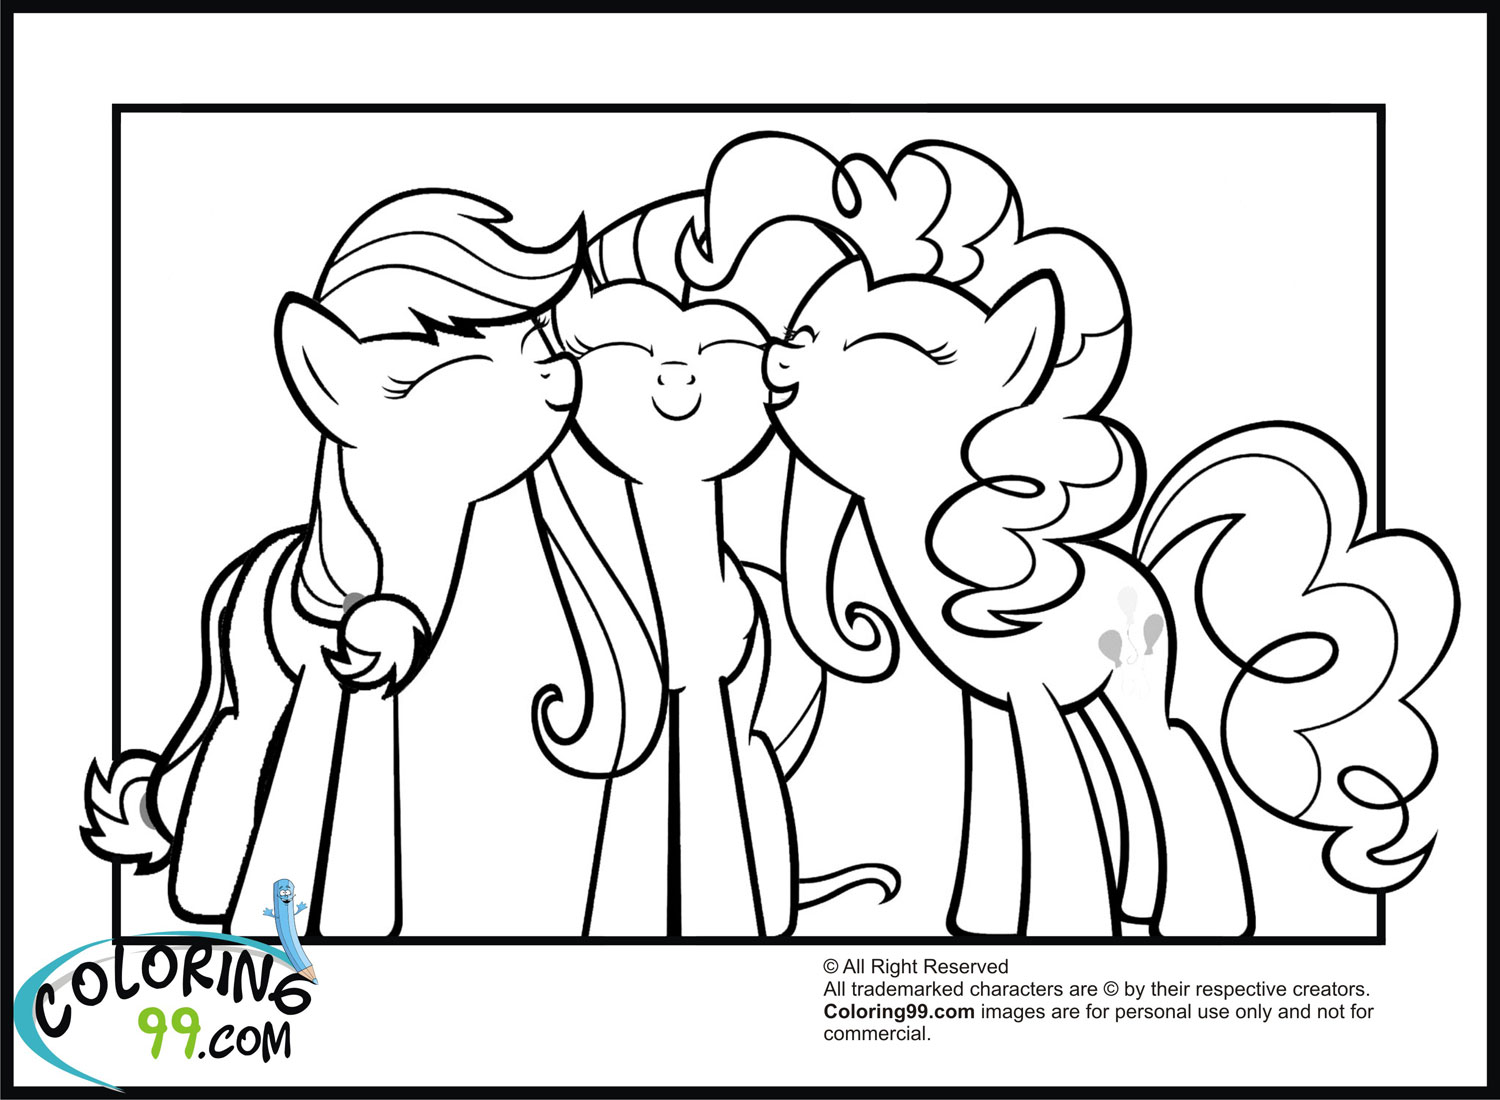 Hard My Little Pony Coloring Pages : My little pony coloring pages team colors